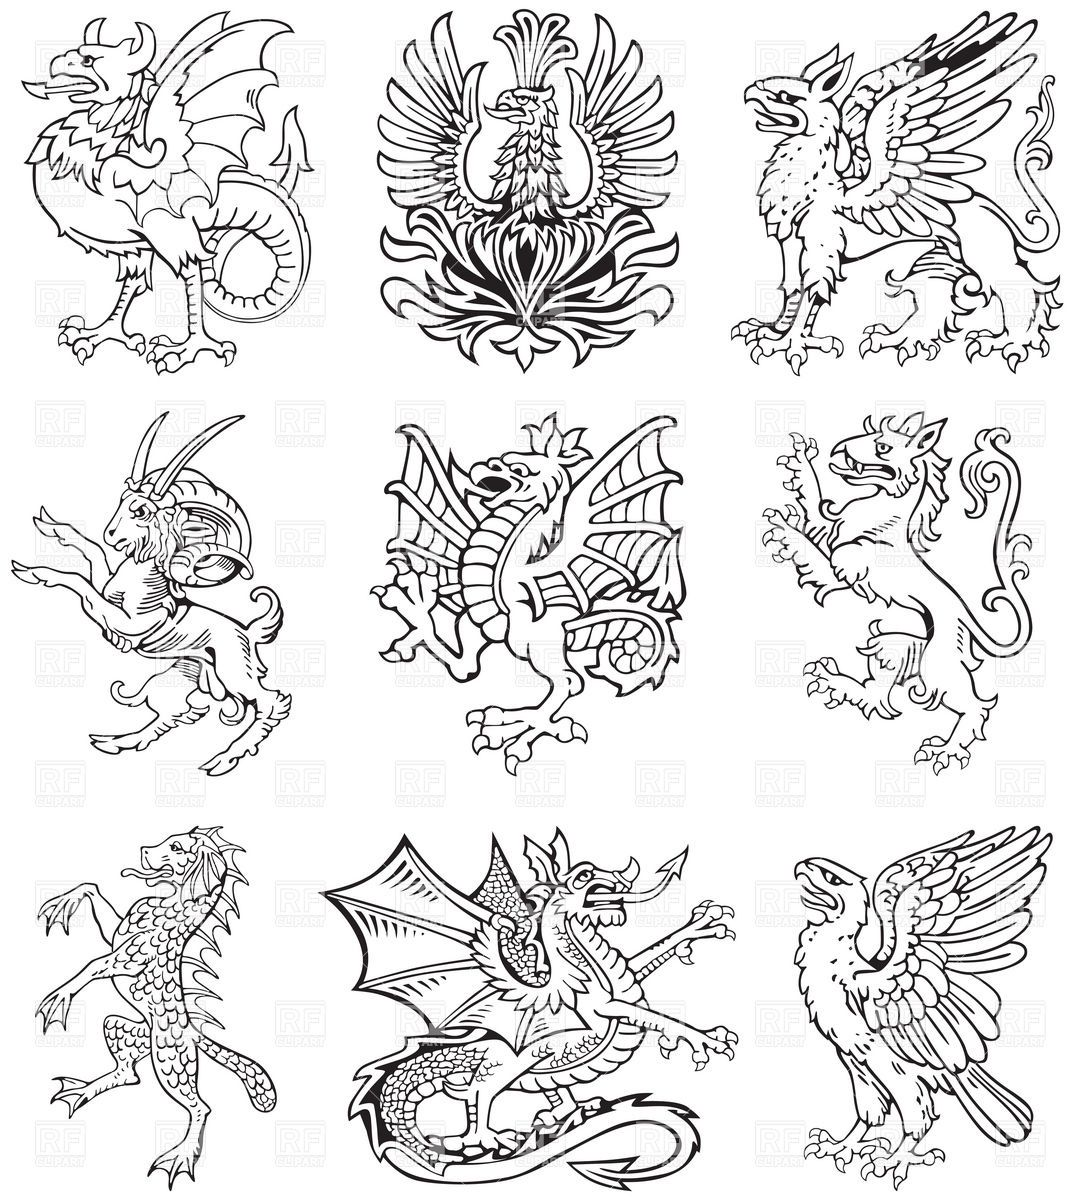 How to breed heraldic dragon - Mythological Heraldic Monsters Gryphons And Dragons Download Royalty